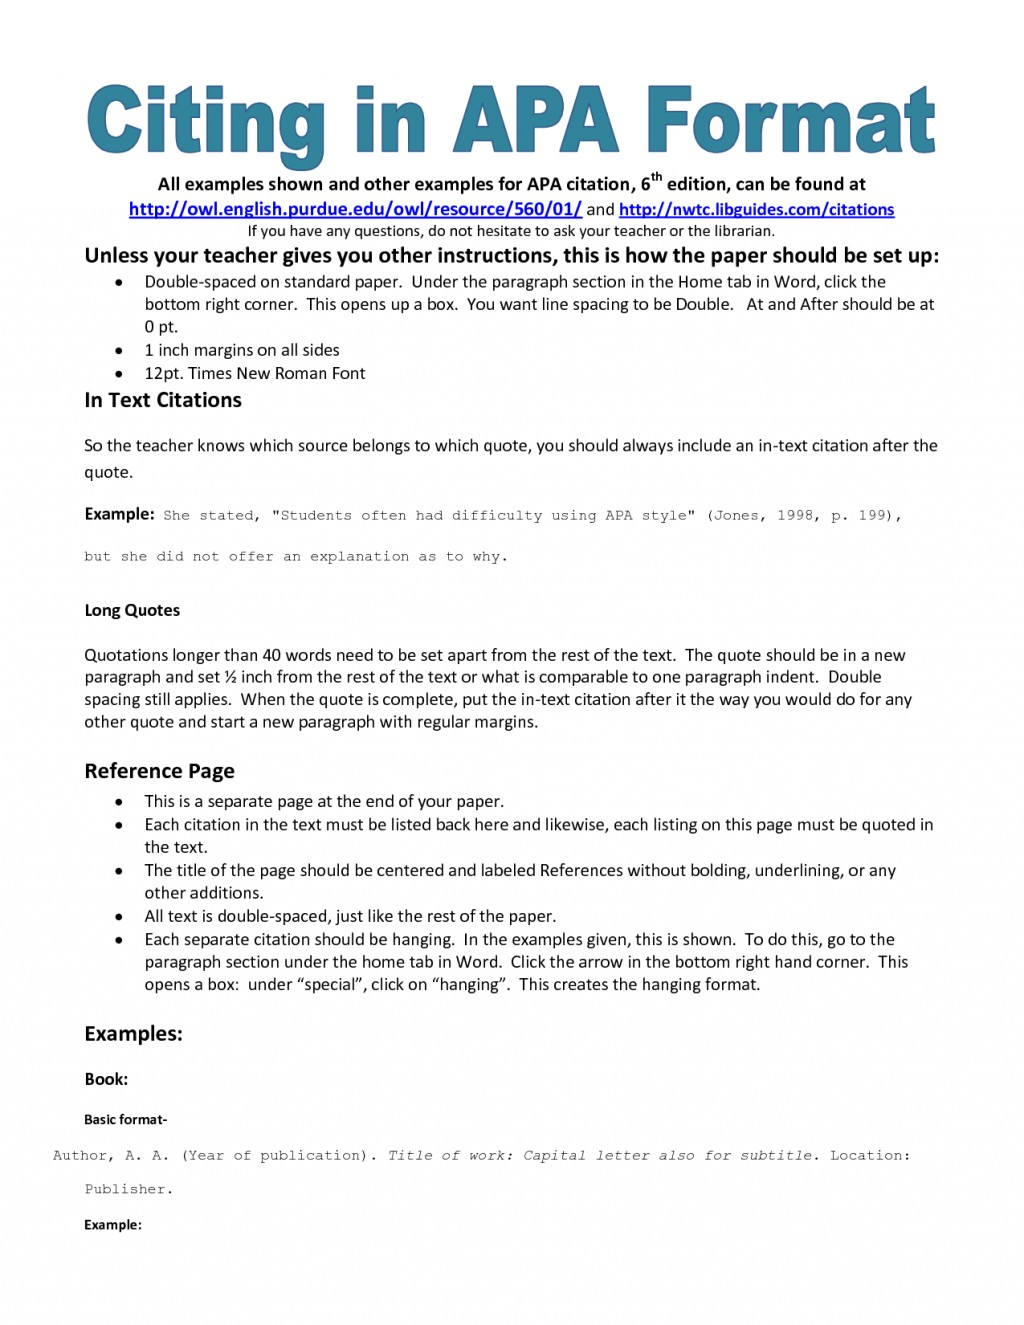 004 Apa Format Research Paper Bibliography Shocking In Text Citations Citation Style Model Large